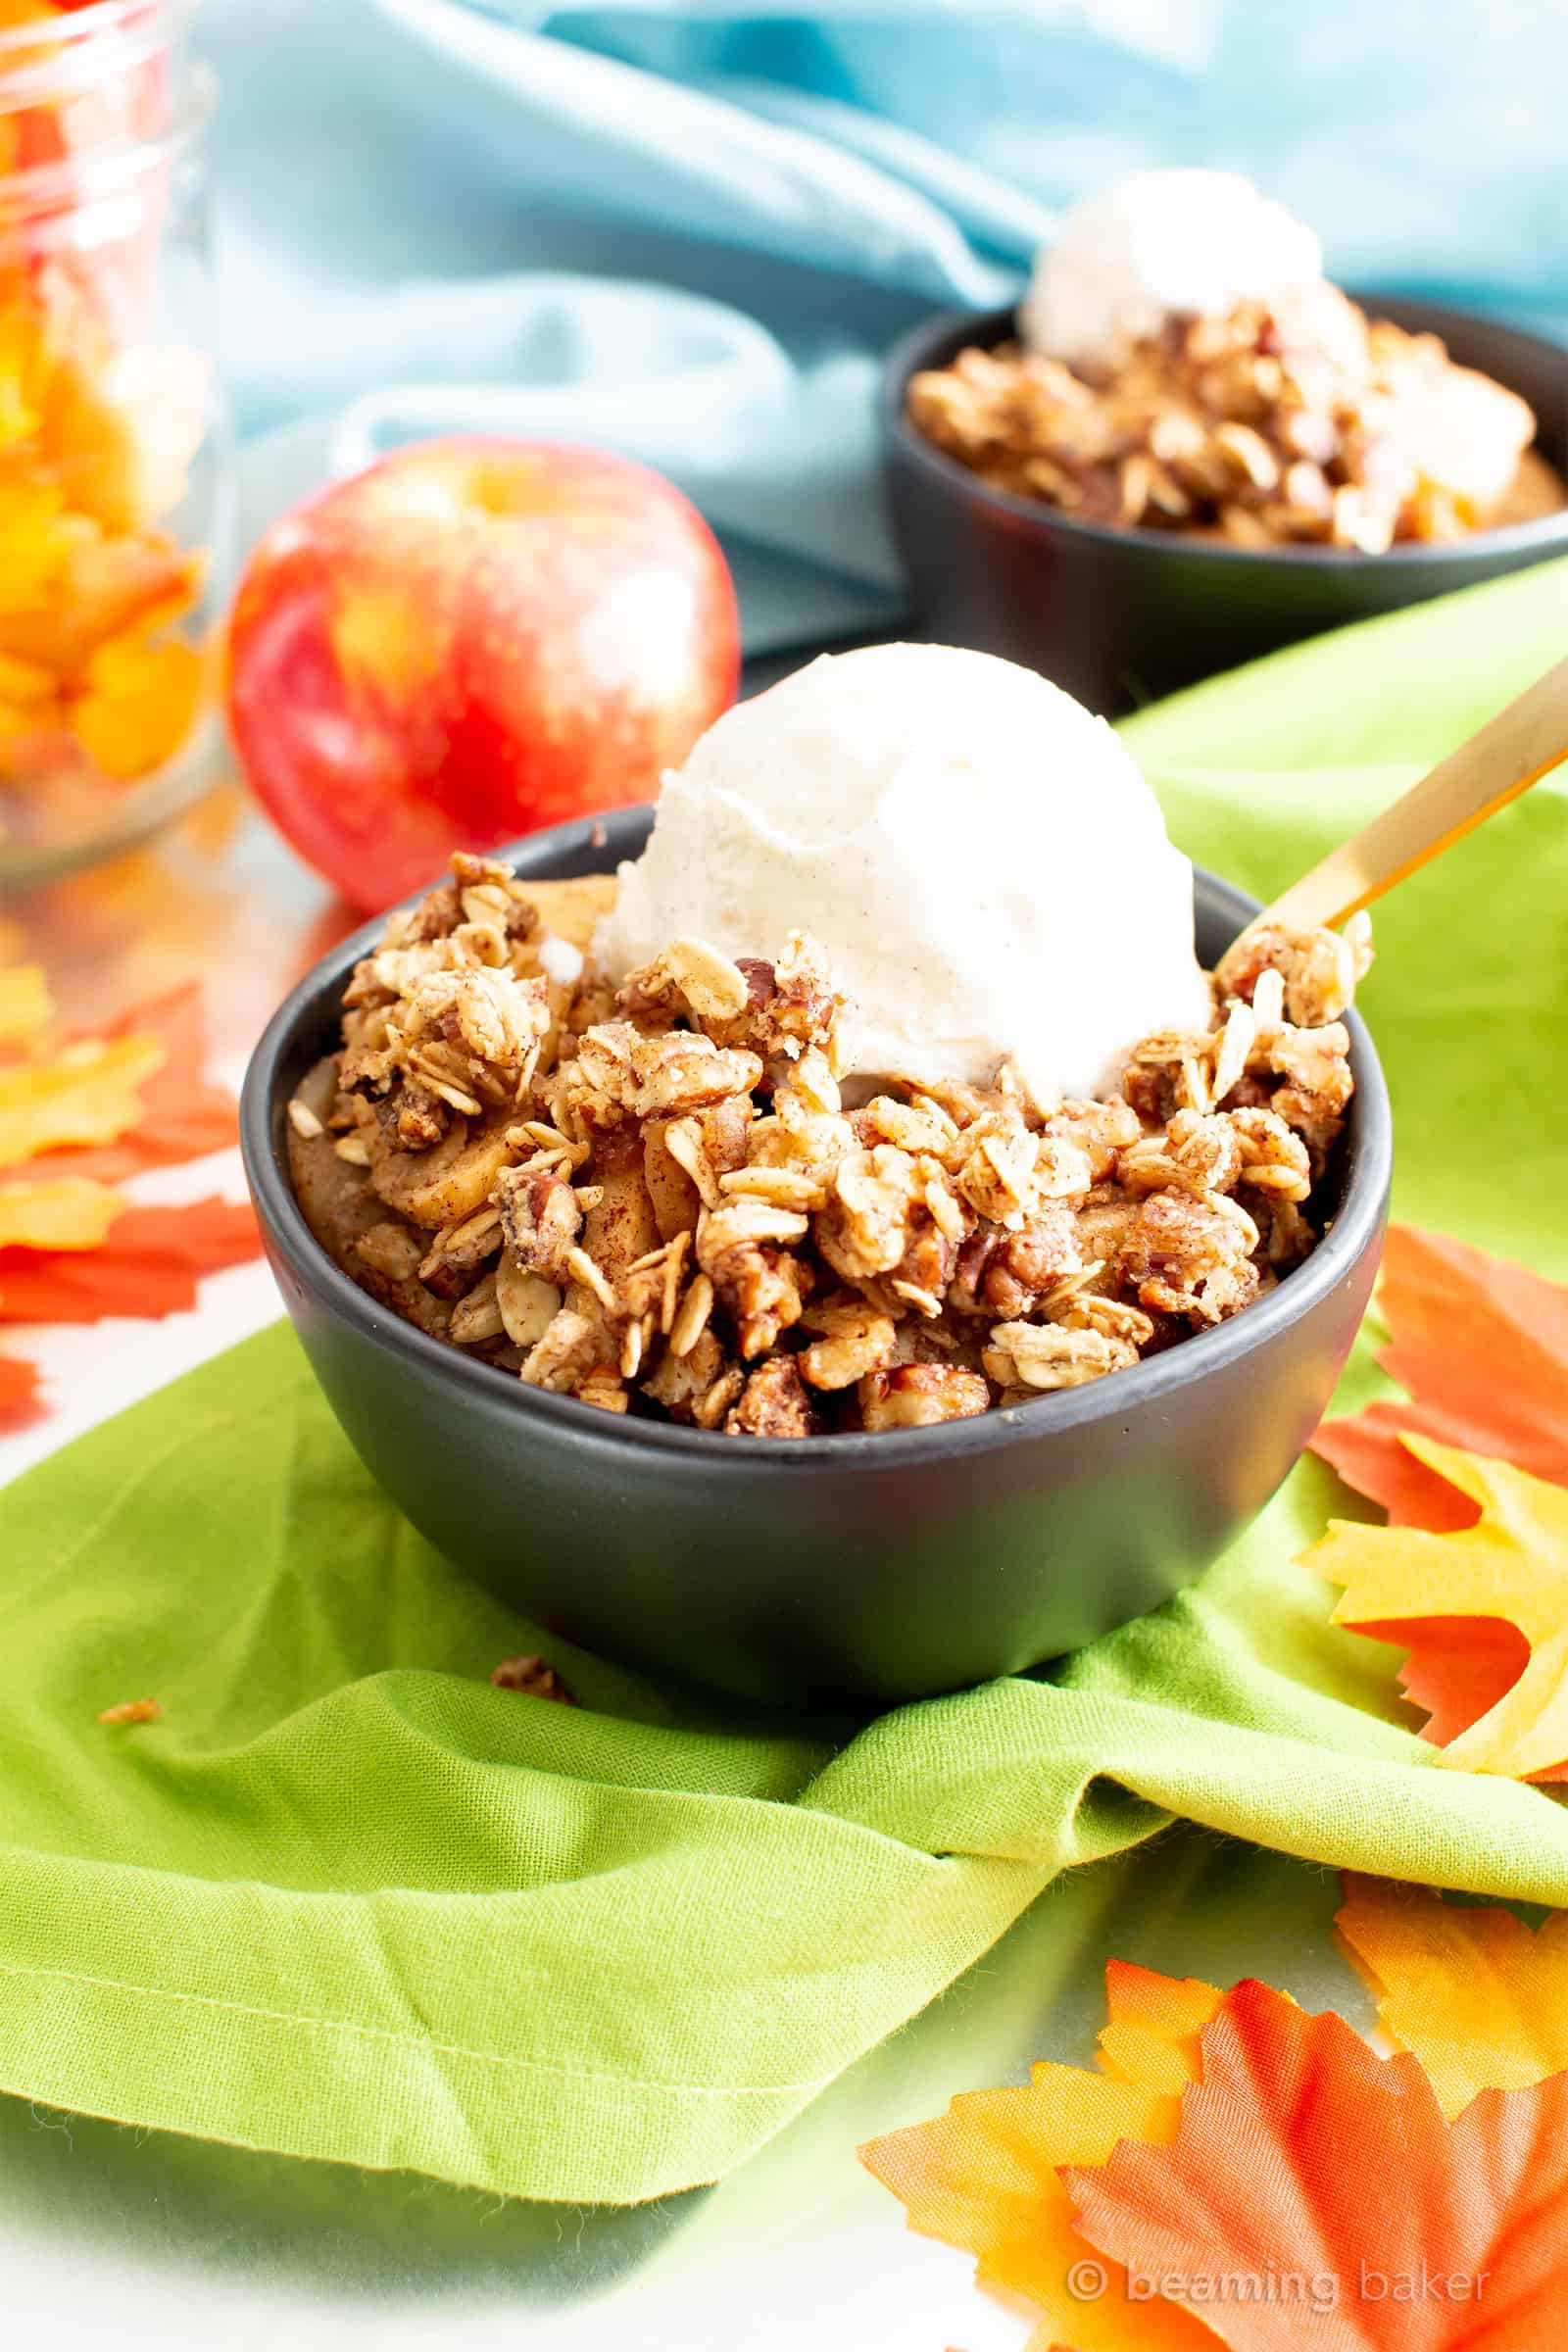 Gluten Free Fall Recipes  Vegan Gluten Free Cinnamon Apple Crisp with Oats Dairy